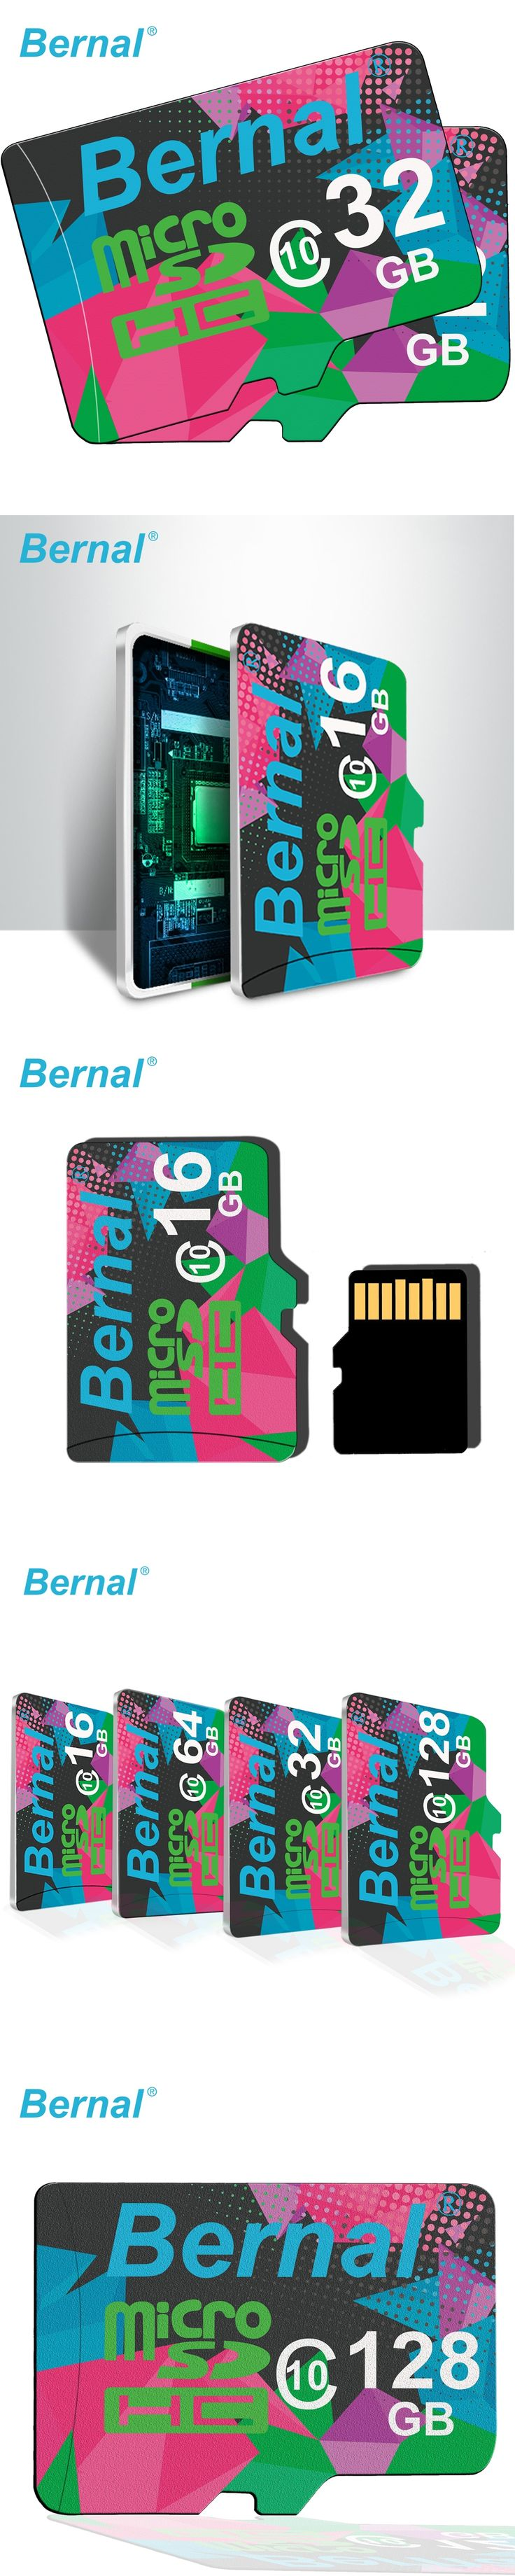 2017 Bernal micro sd card 64gb 128G Class10 cartao de memoria micro sd 8GB 16GB microsd 32GB mini sd card Memory card TF card